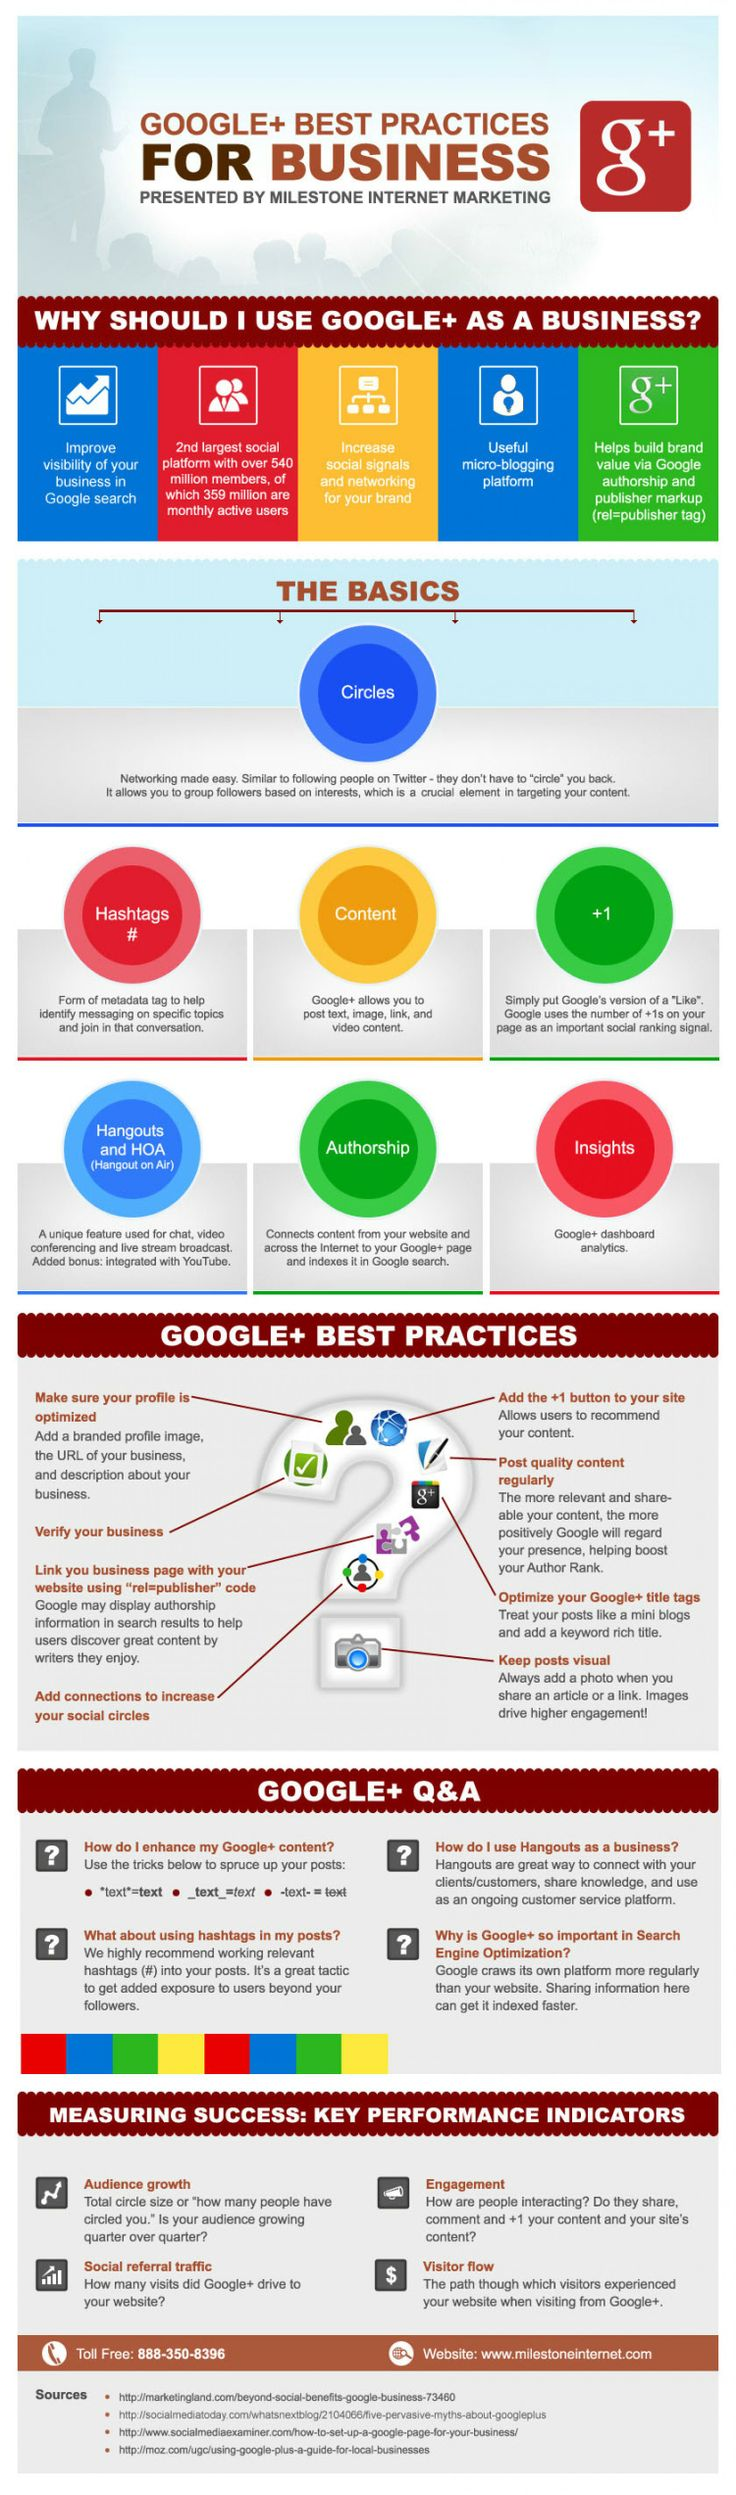 infographic-google-plus-best-practices-for-business-large-view